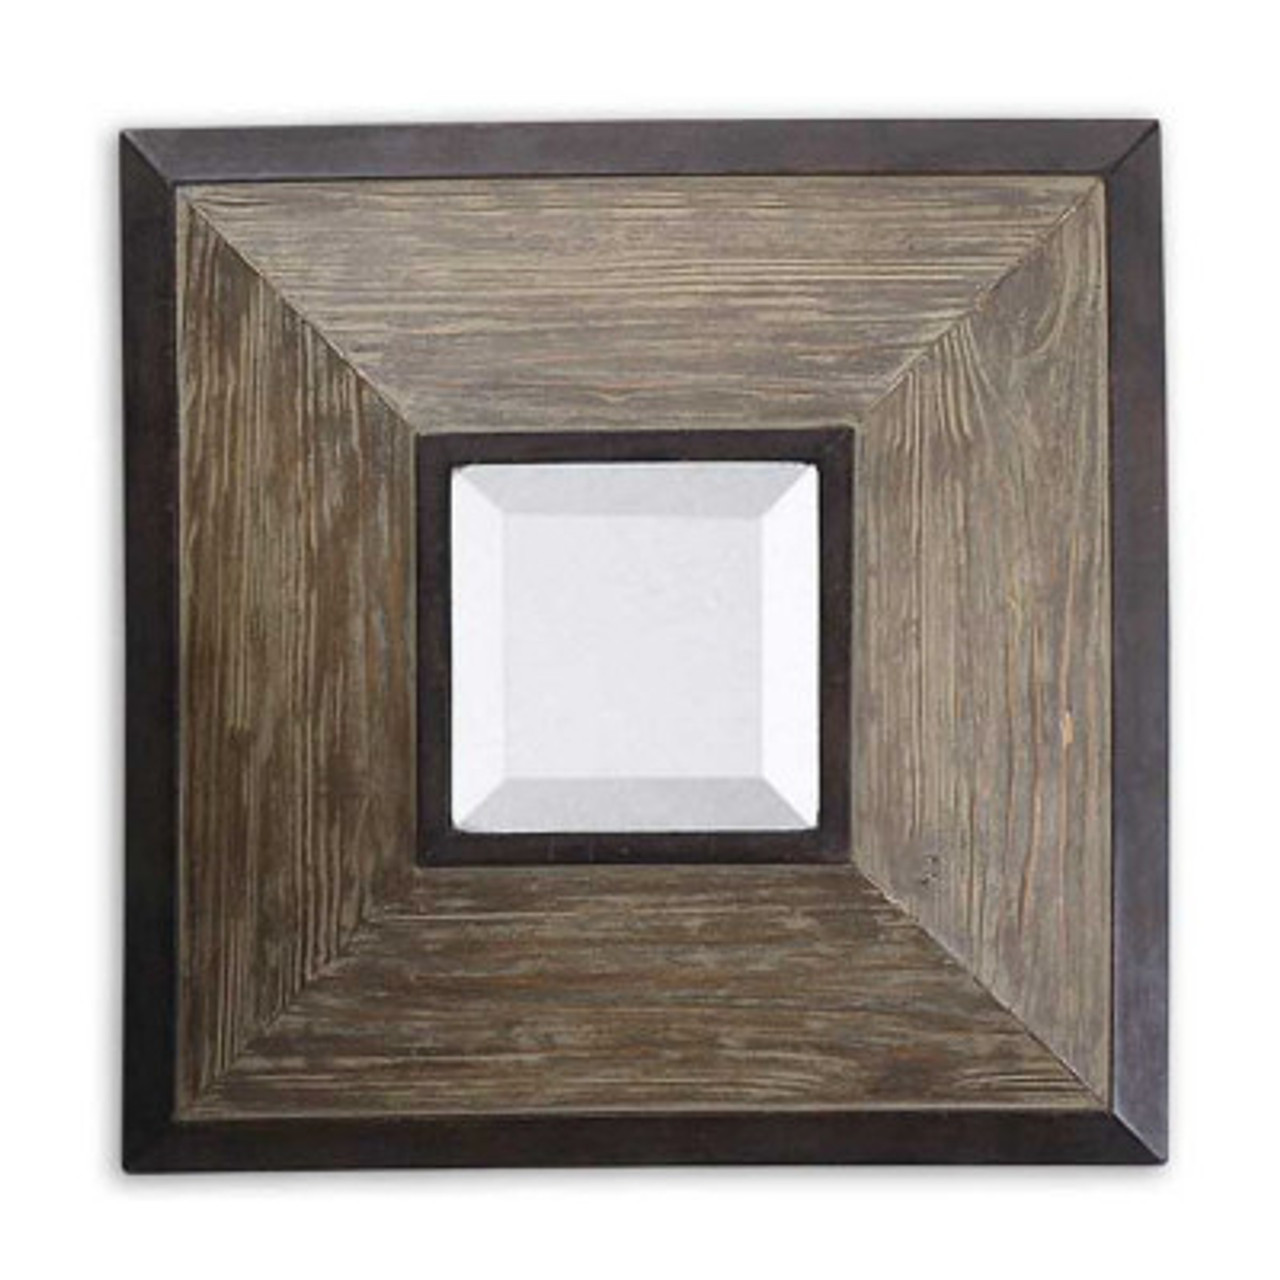 Set Of 4 Beveled Dark Bronze Bordered Wooden Framed Square Wall